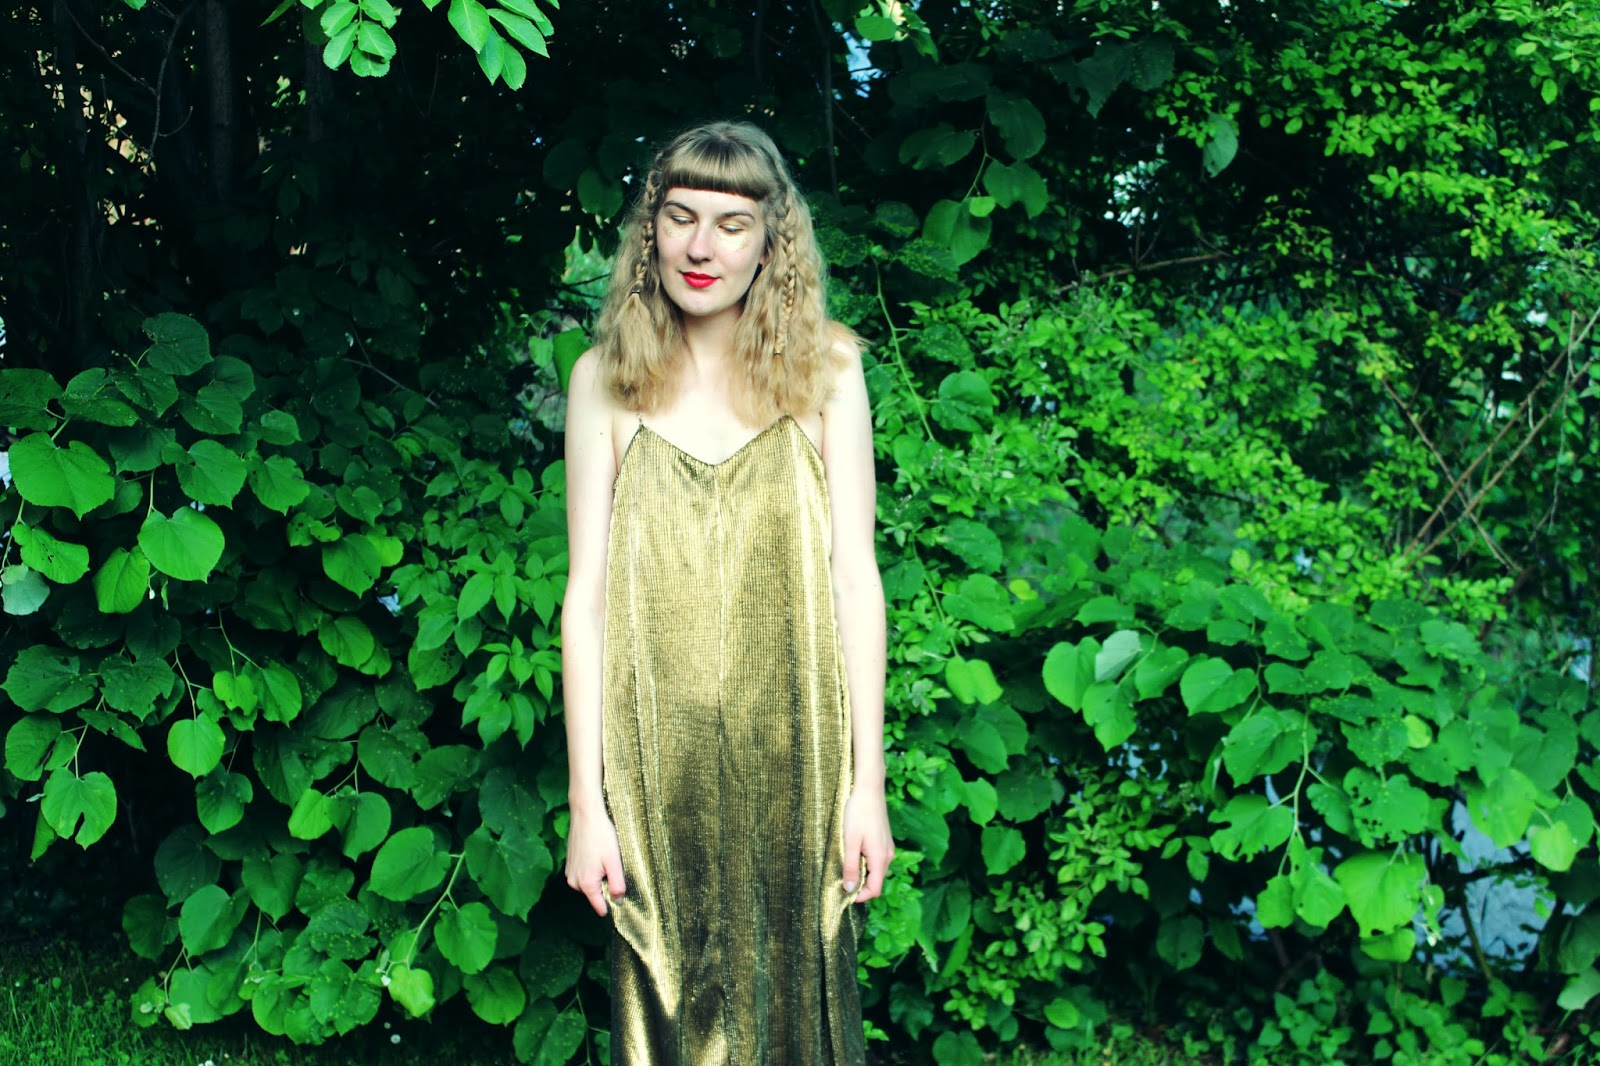 filipa canic, youarethepoet, you are the poet blog, filipa canic blog, golden dress, glitter dress, zaful,